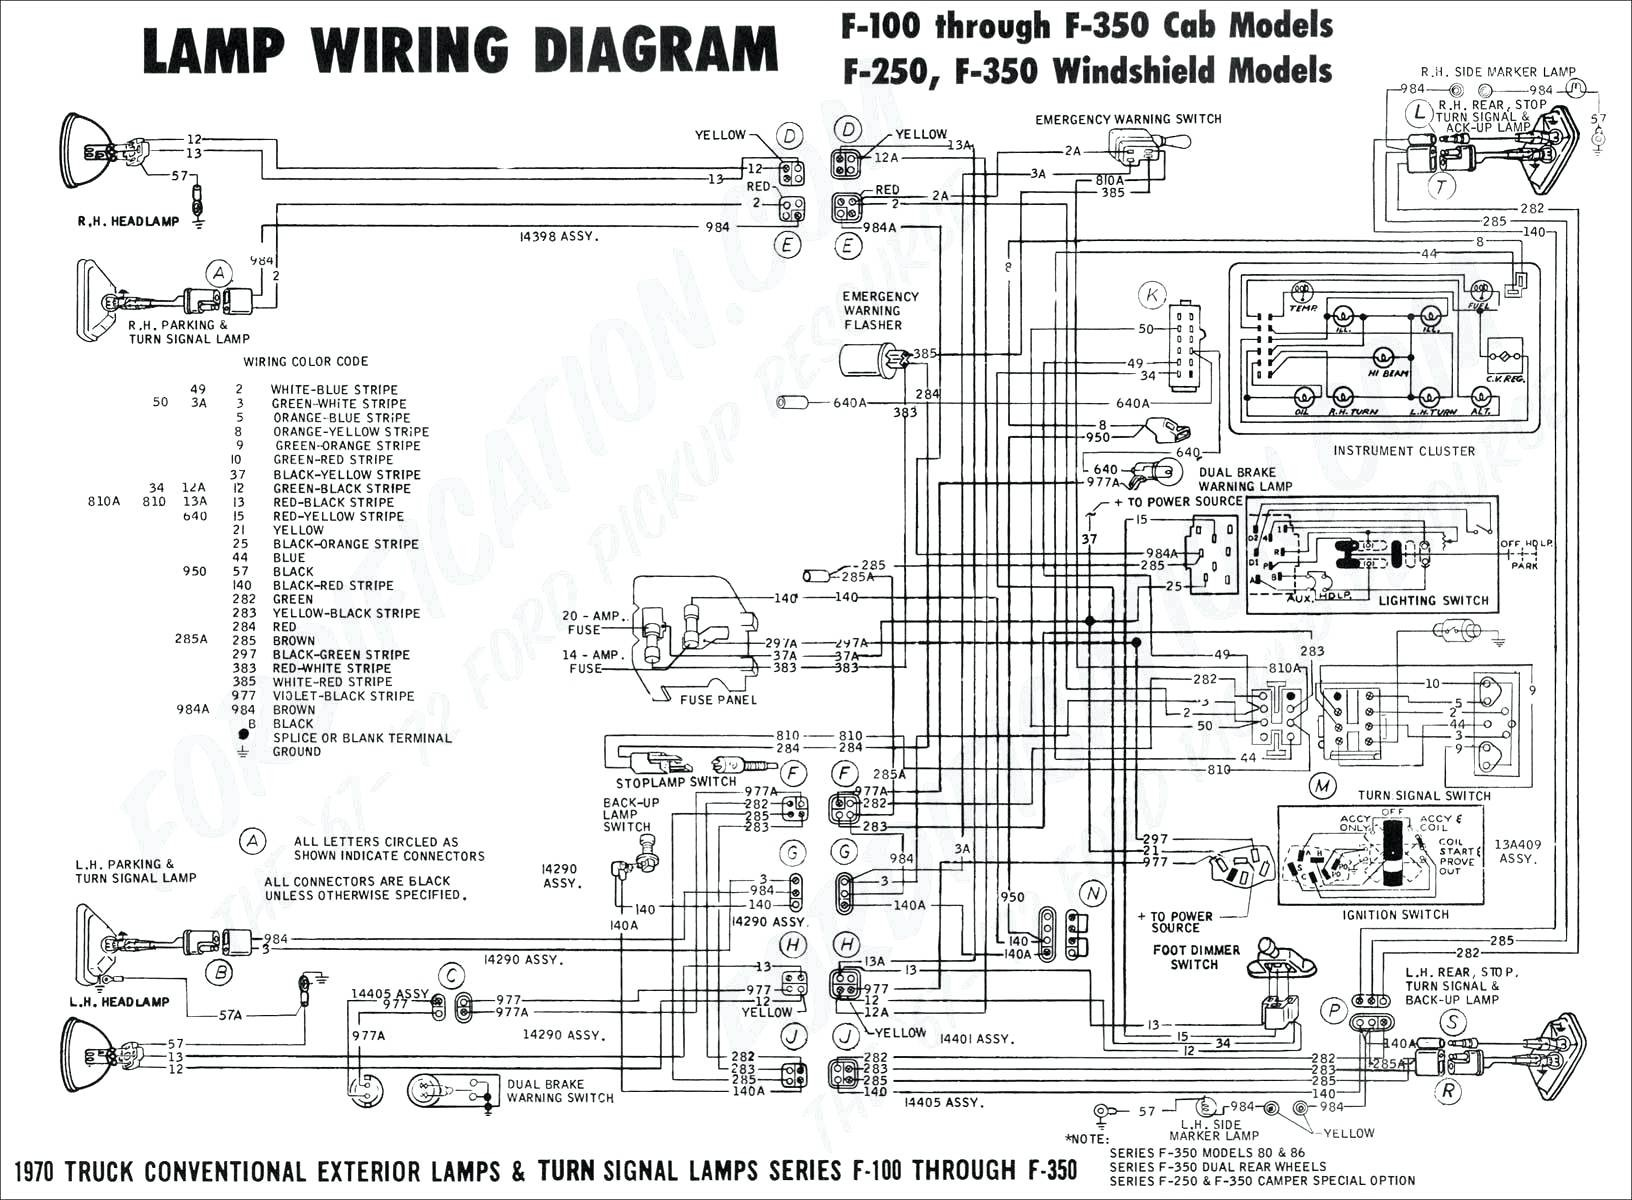 2005 Dodge Durango Wire and Fuse Diagram 79j79x 3 Way Switch Wiring Dodge Ram Hitch Wiring Diagram Hd Of 2005 Dodge Durango Wire and Fuse Diagram